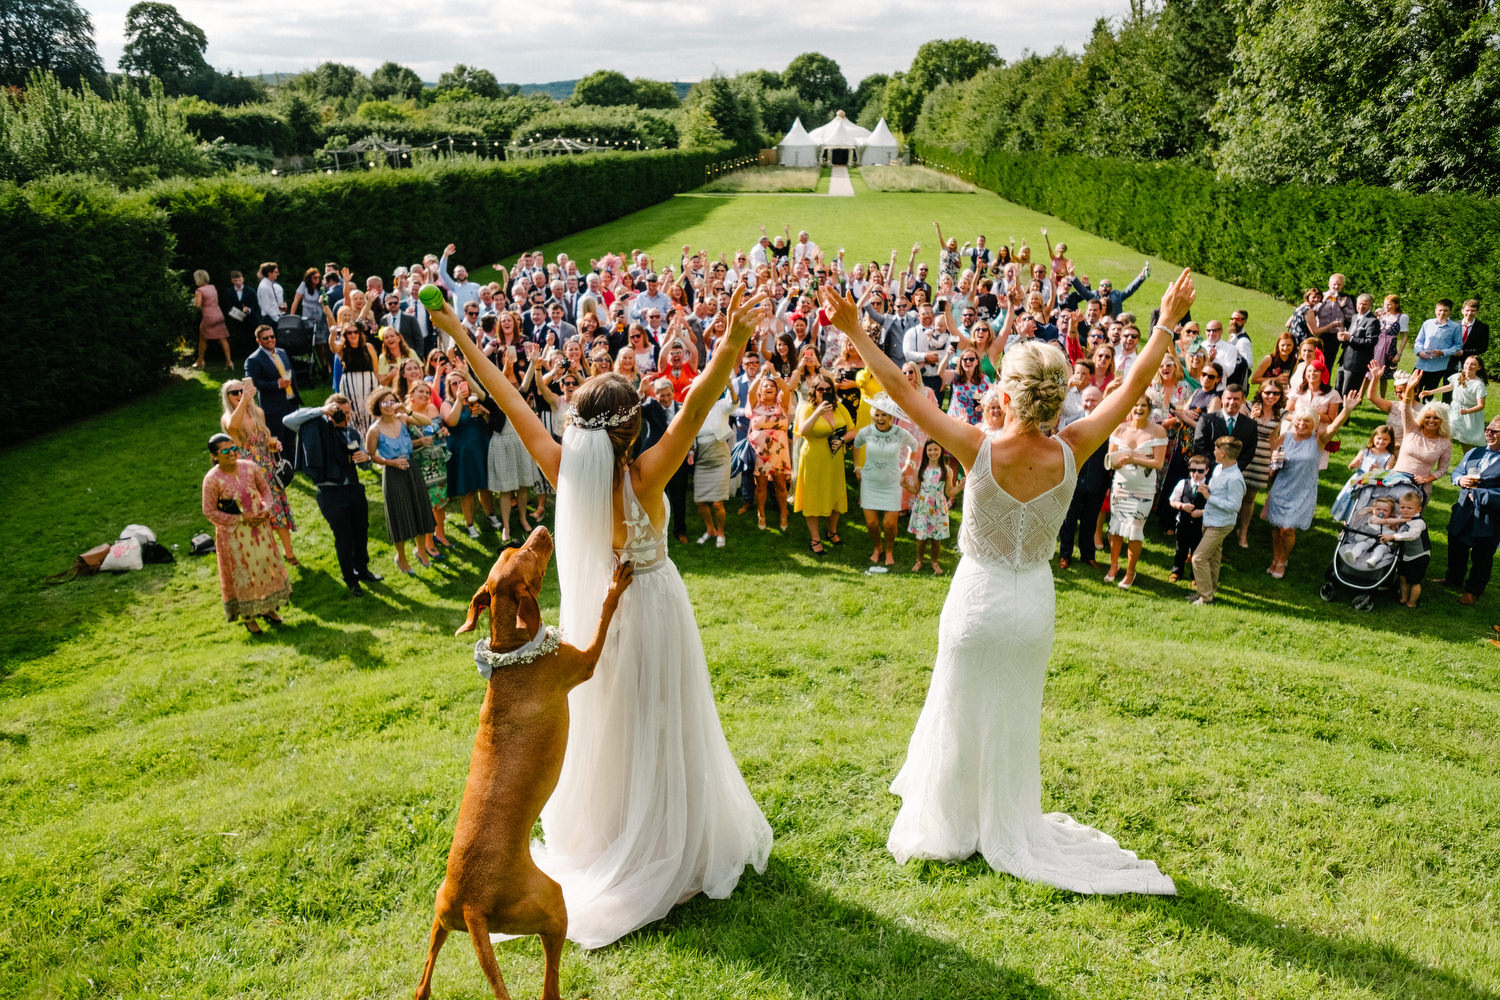 dmp0677_guests_indian_samesex_ballintubbert_house_twobrides_crowd_fun_dogs_tent_wedding